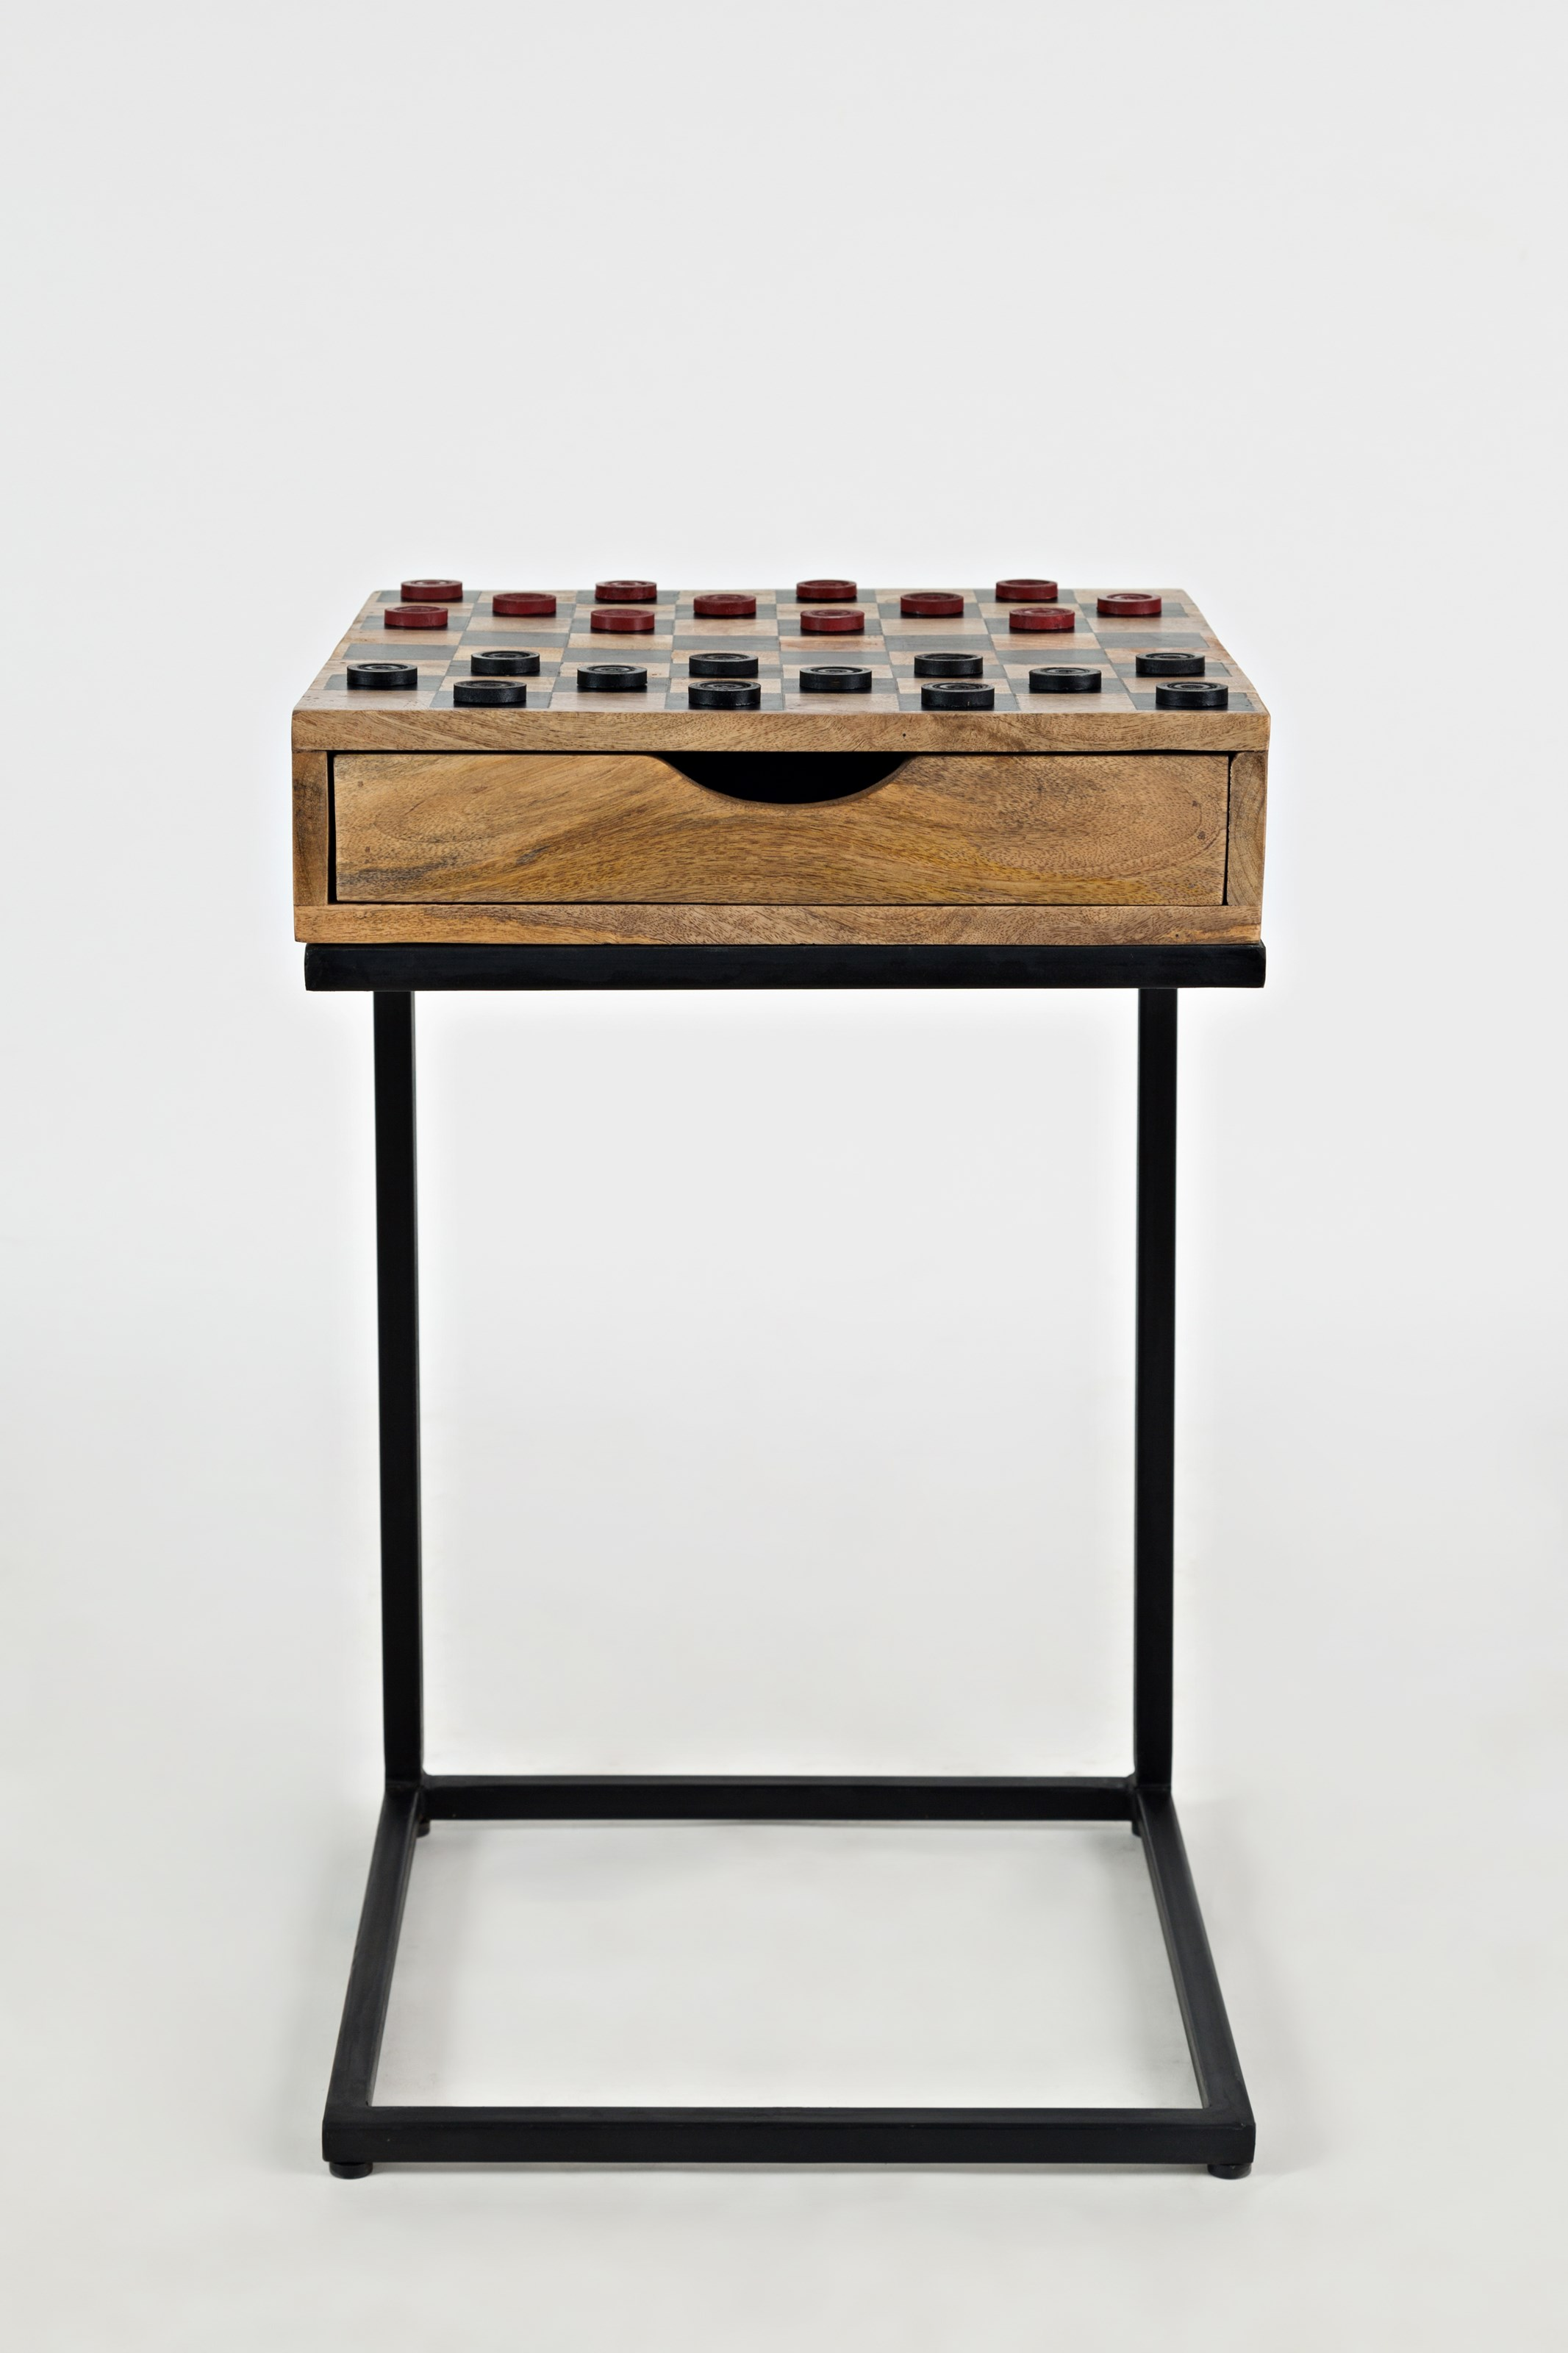 Global Archive Fairchild Checkerboard C-Table by Jofran at Jofran